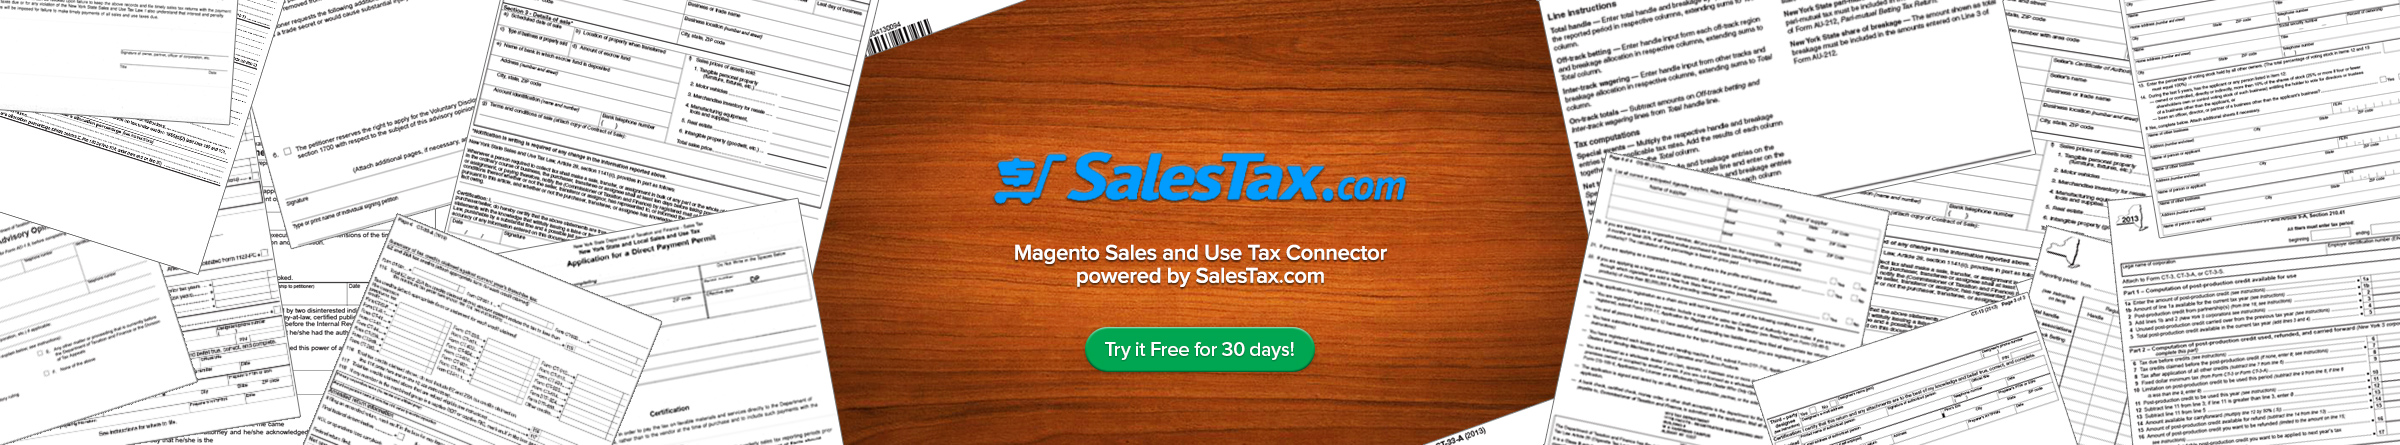 Magento Sales and Use Tax Connector